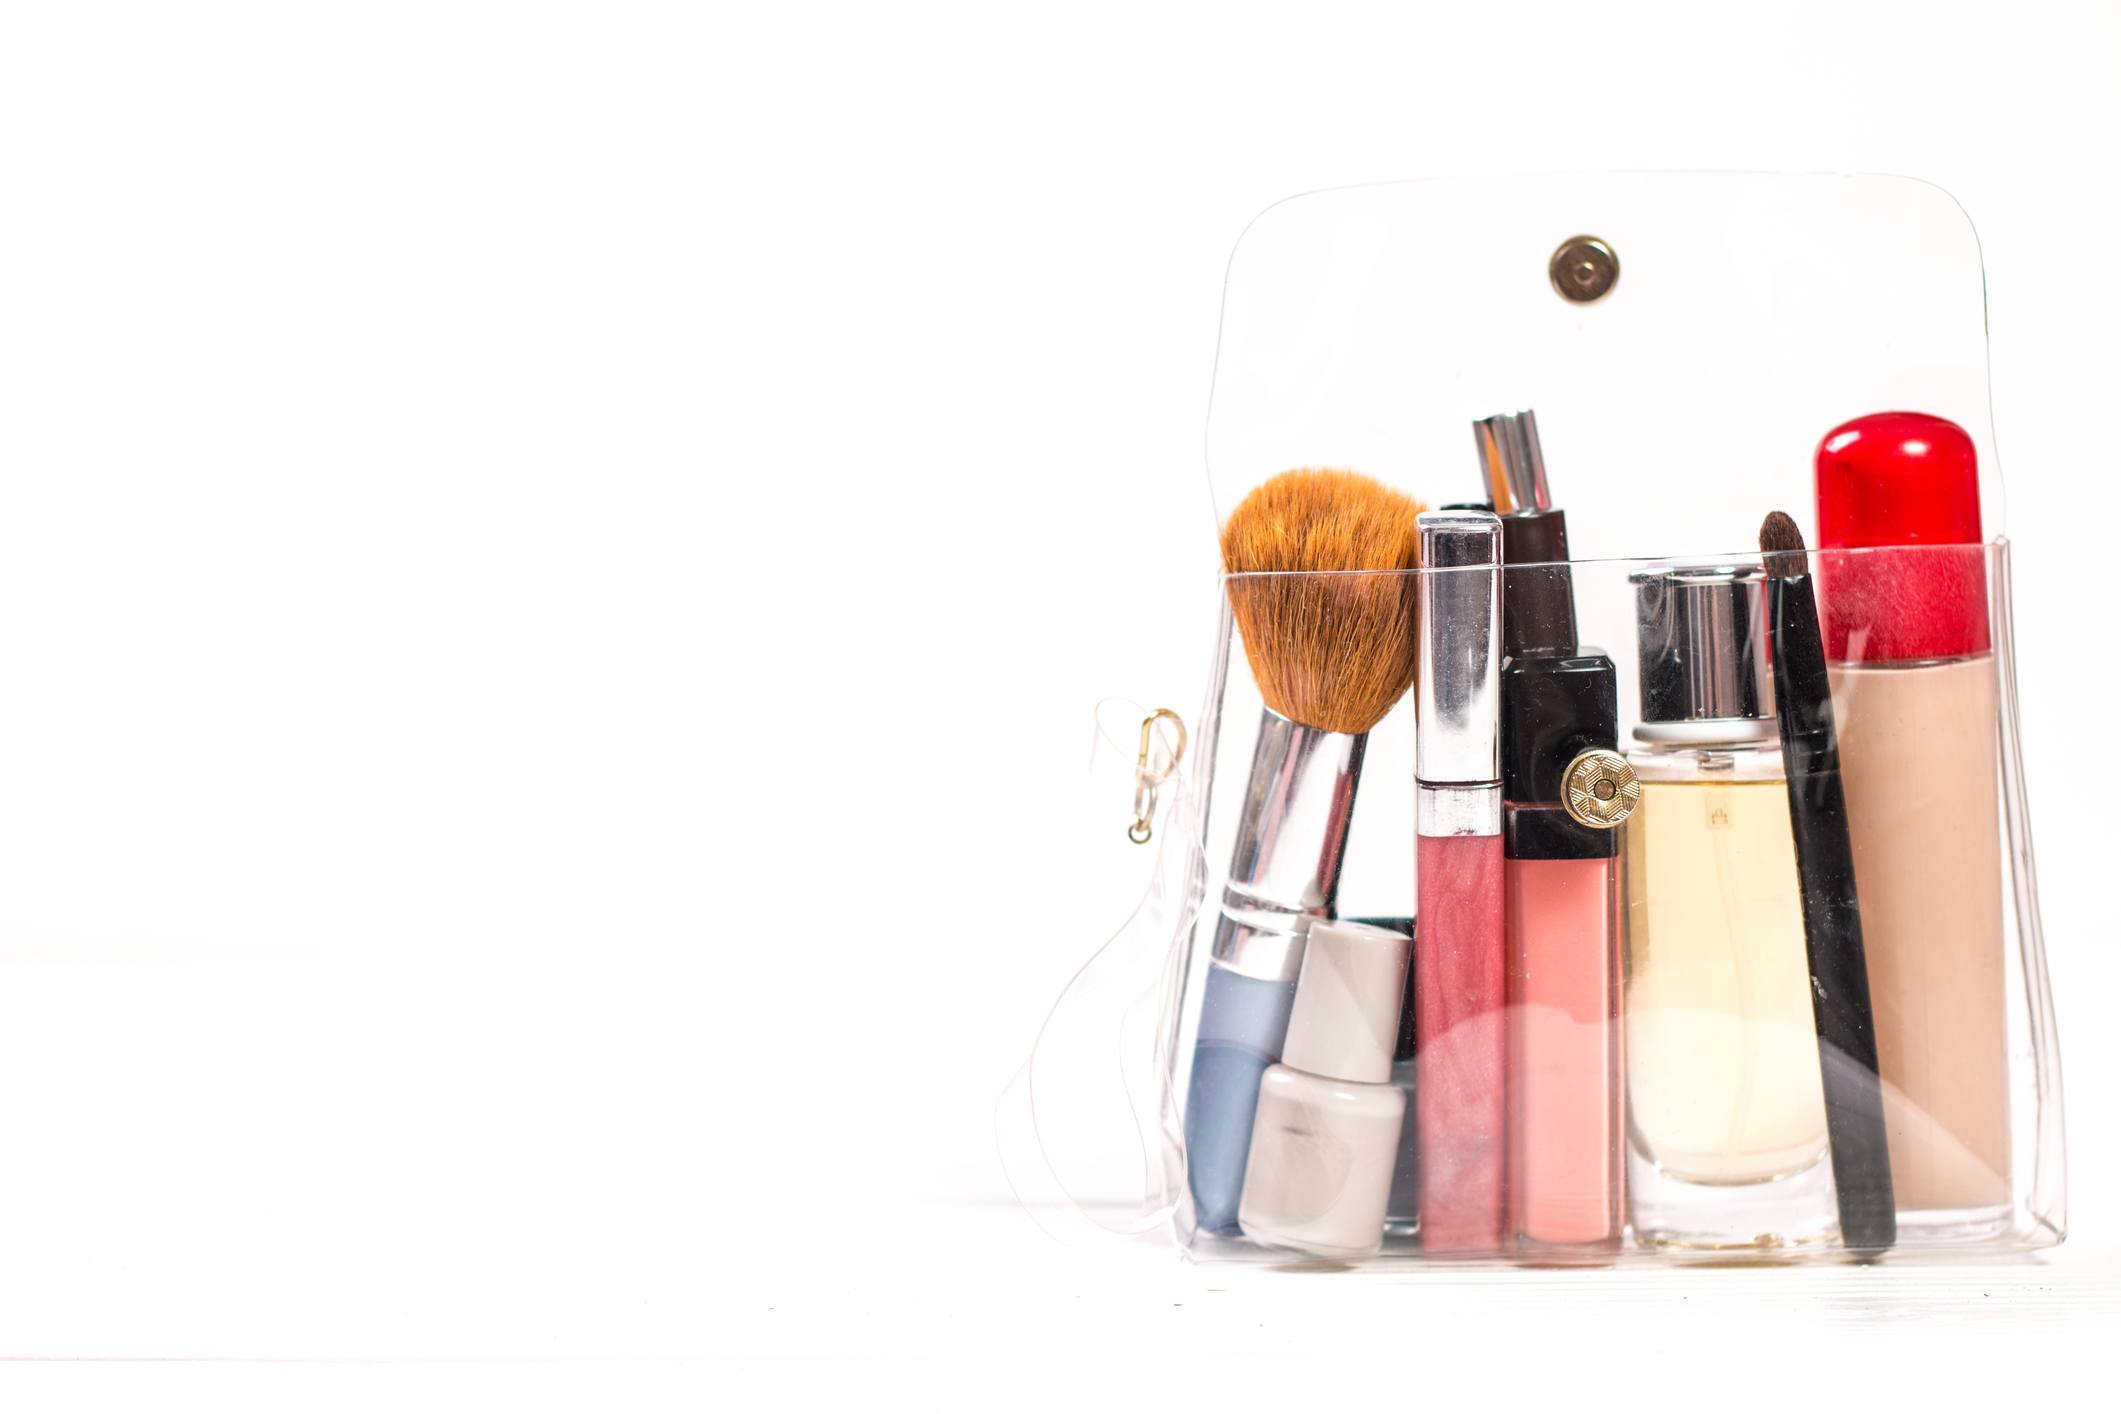 10 Types Of Beauty Products That Are Terrible For Your Skin